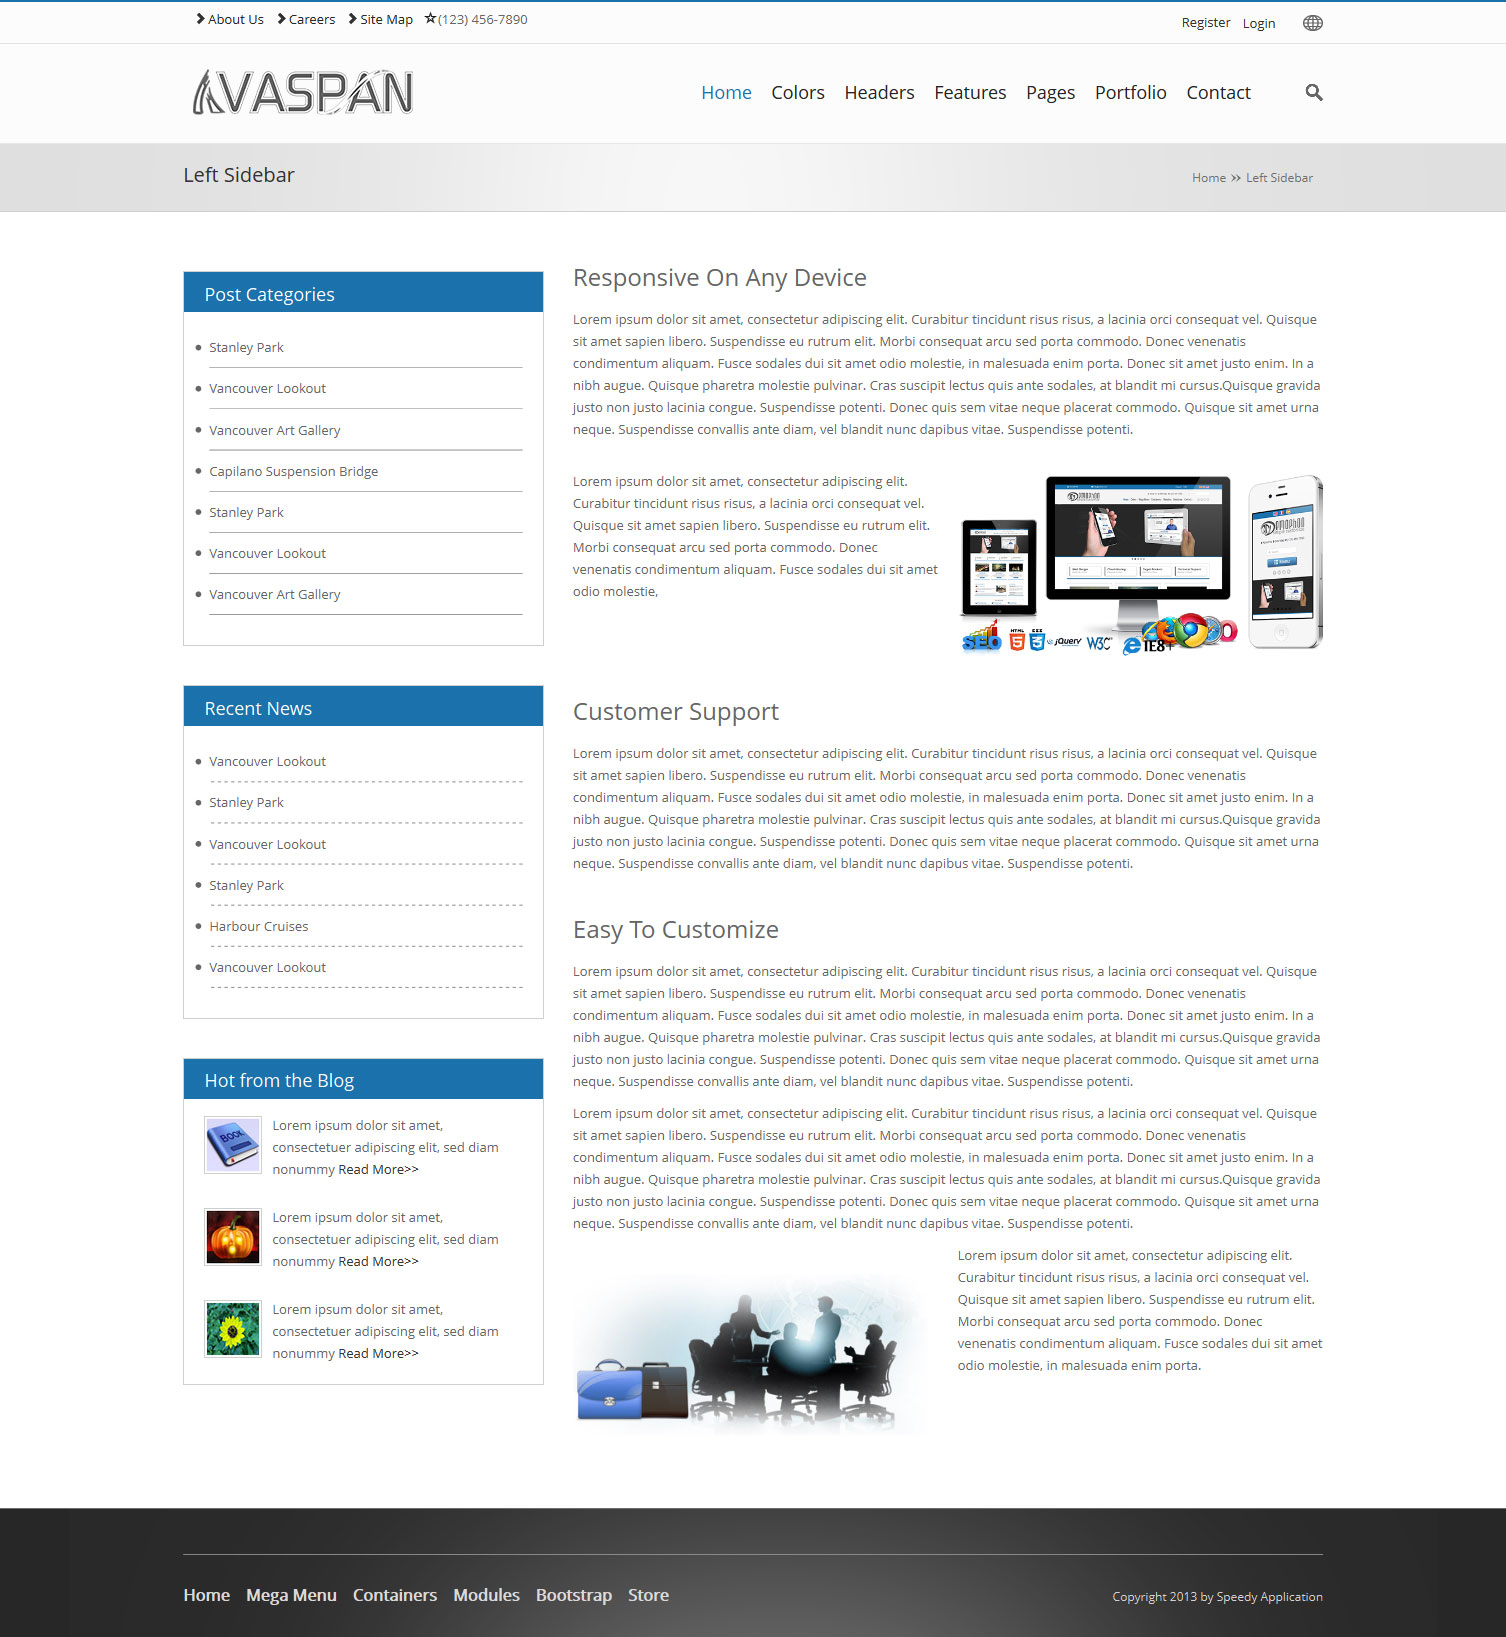 Home Pages Vaspan Dnn/Dotnetnuke theme / skin